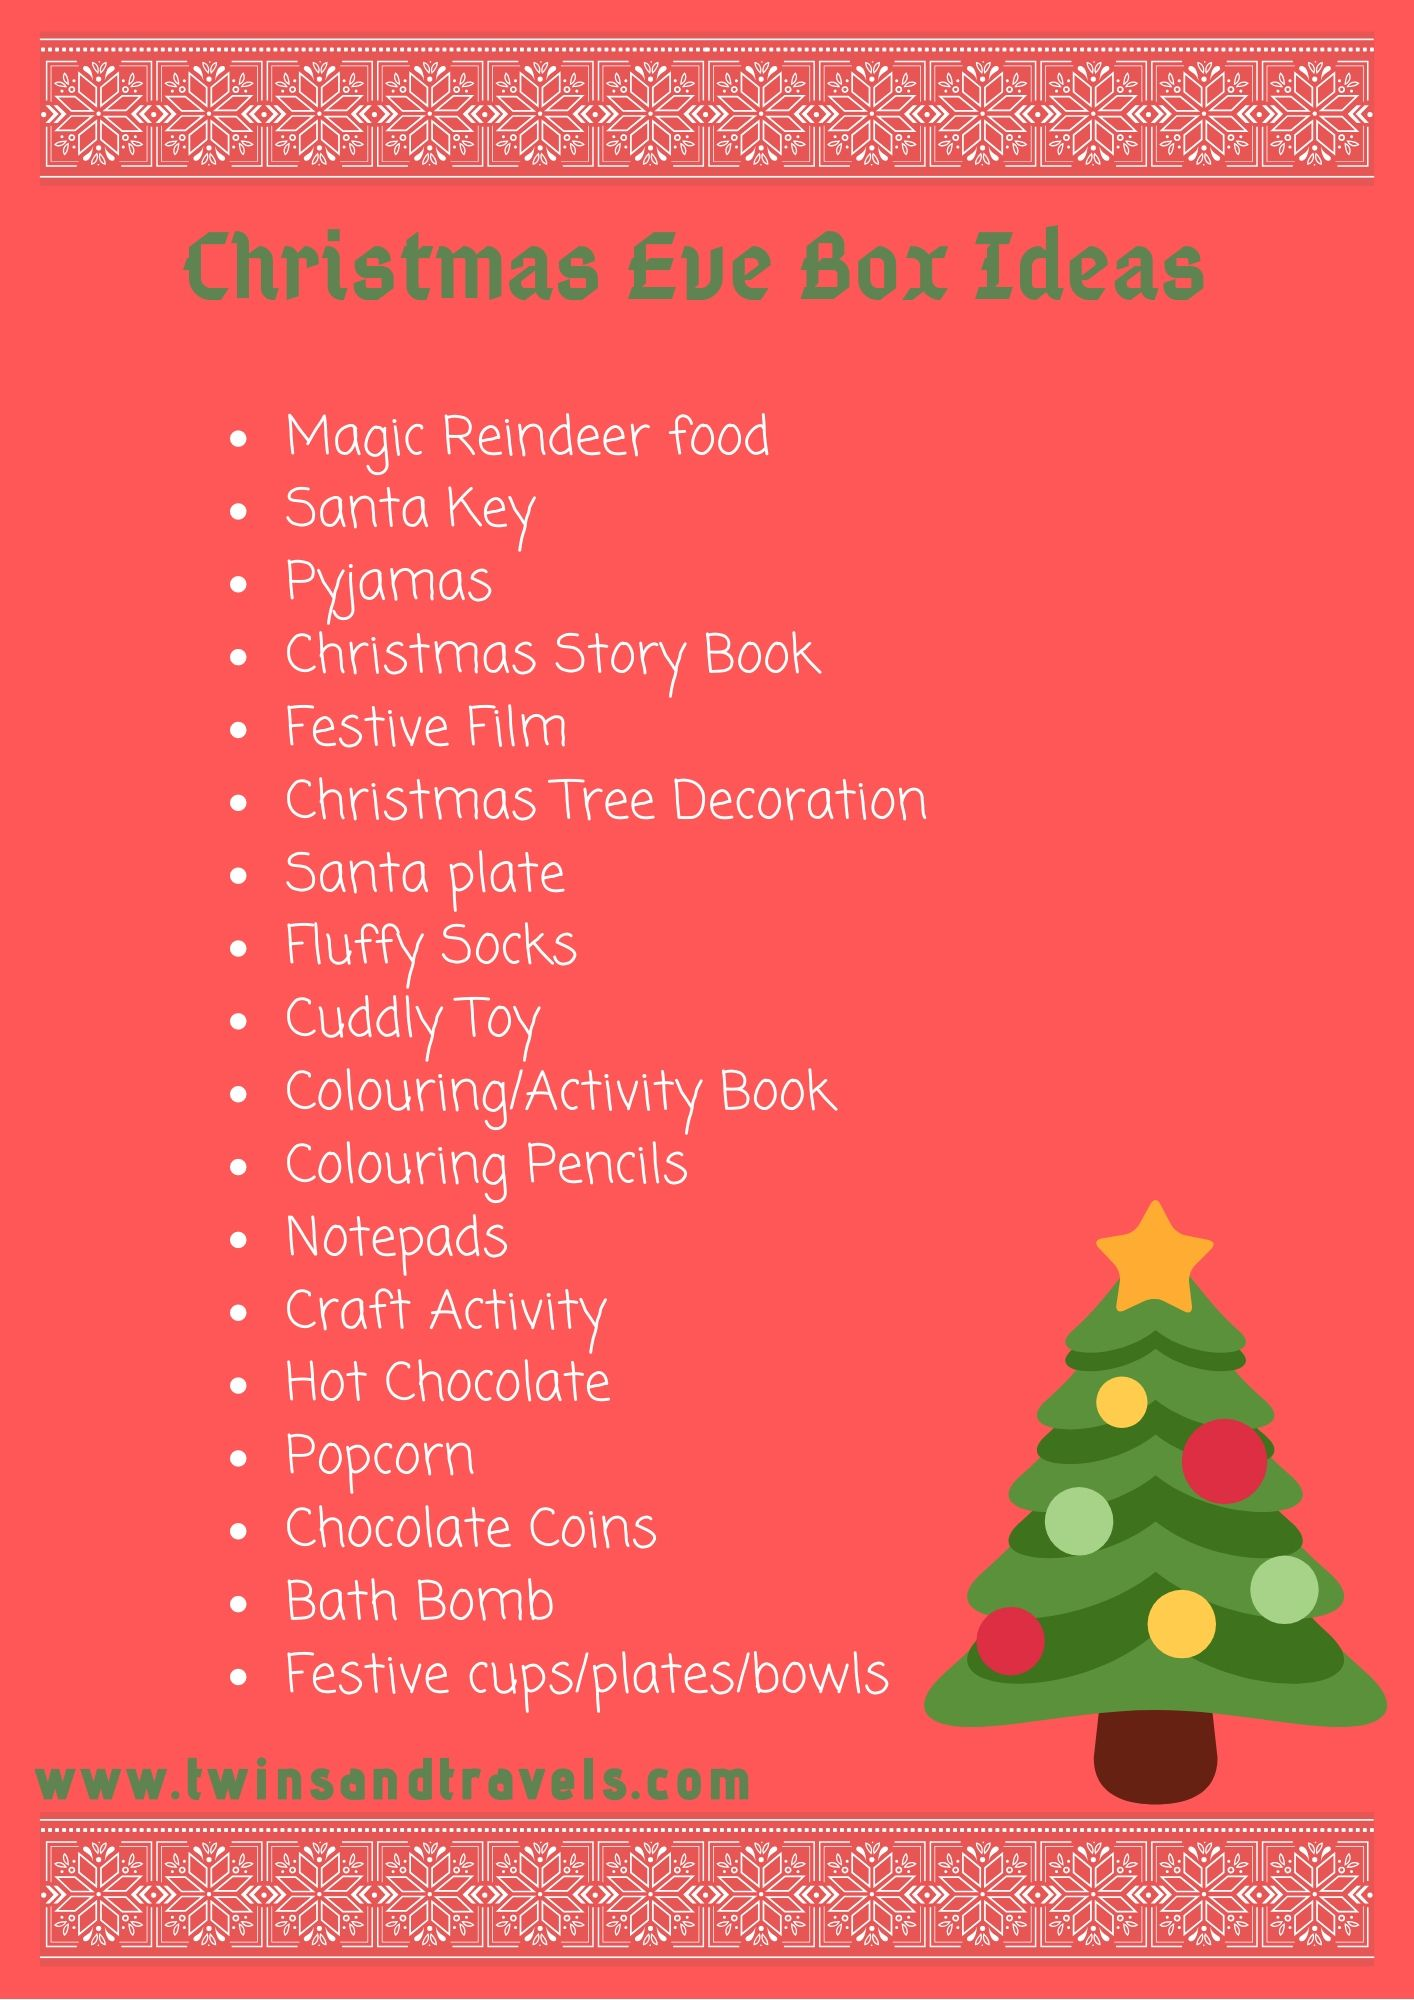 List of ideas of what to include in your Christmas eve box